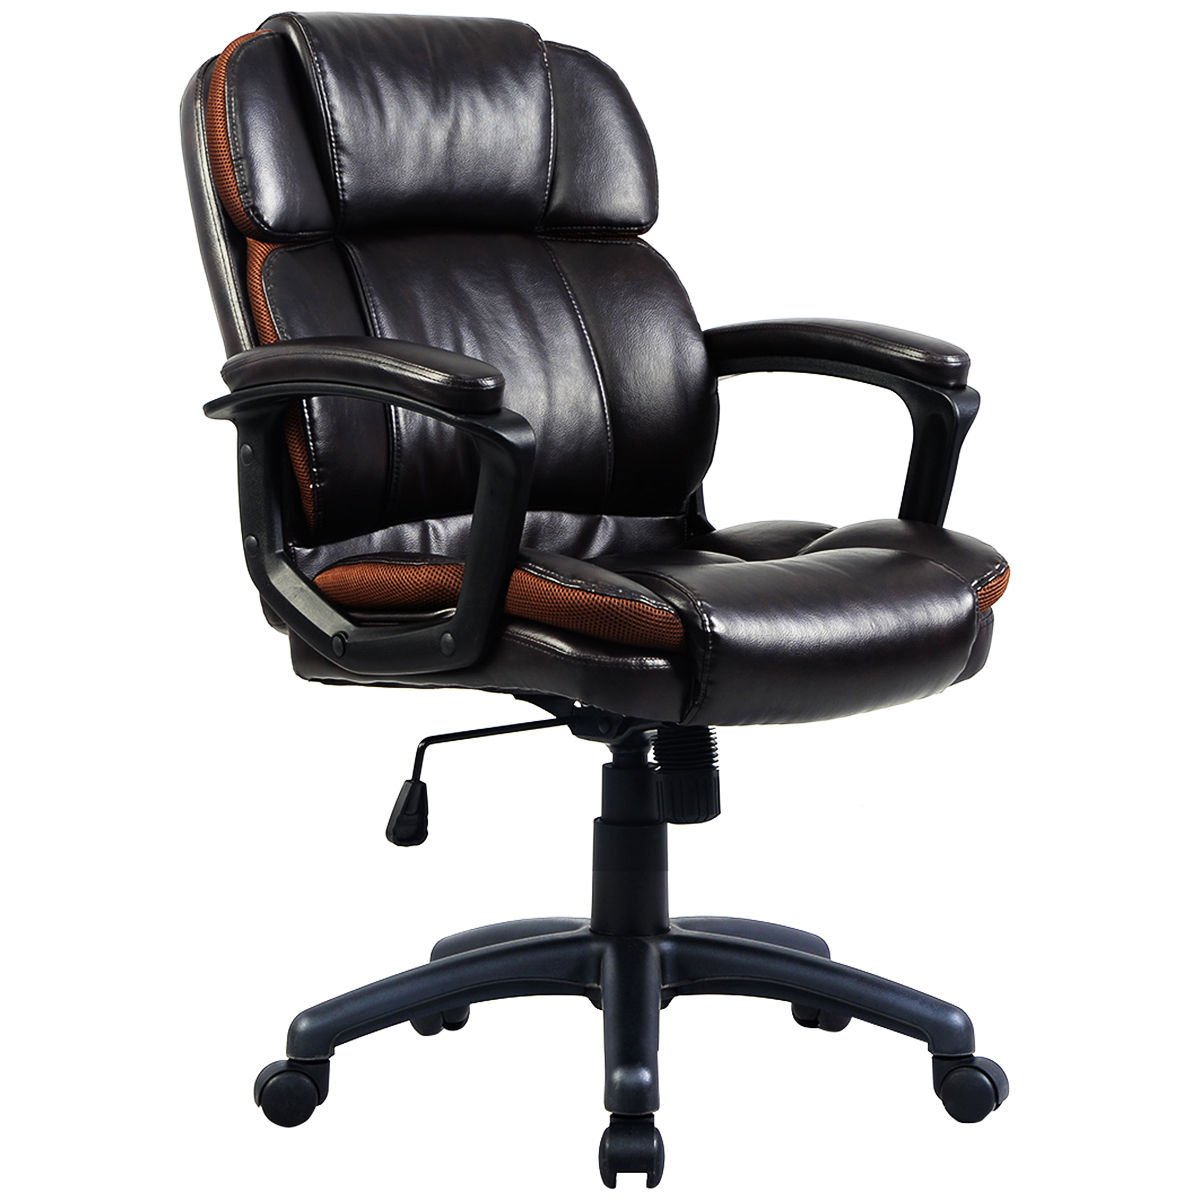 Giantex Ergonomic Task Chair PU Mid-Back Leather Executive Computer Desk Task Office Chair (Brown 24.4''x 28''x37.4''-41.3'')